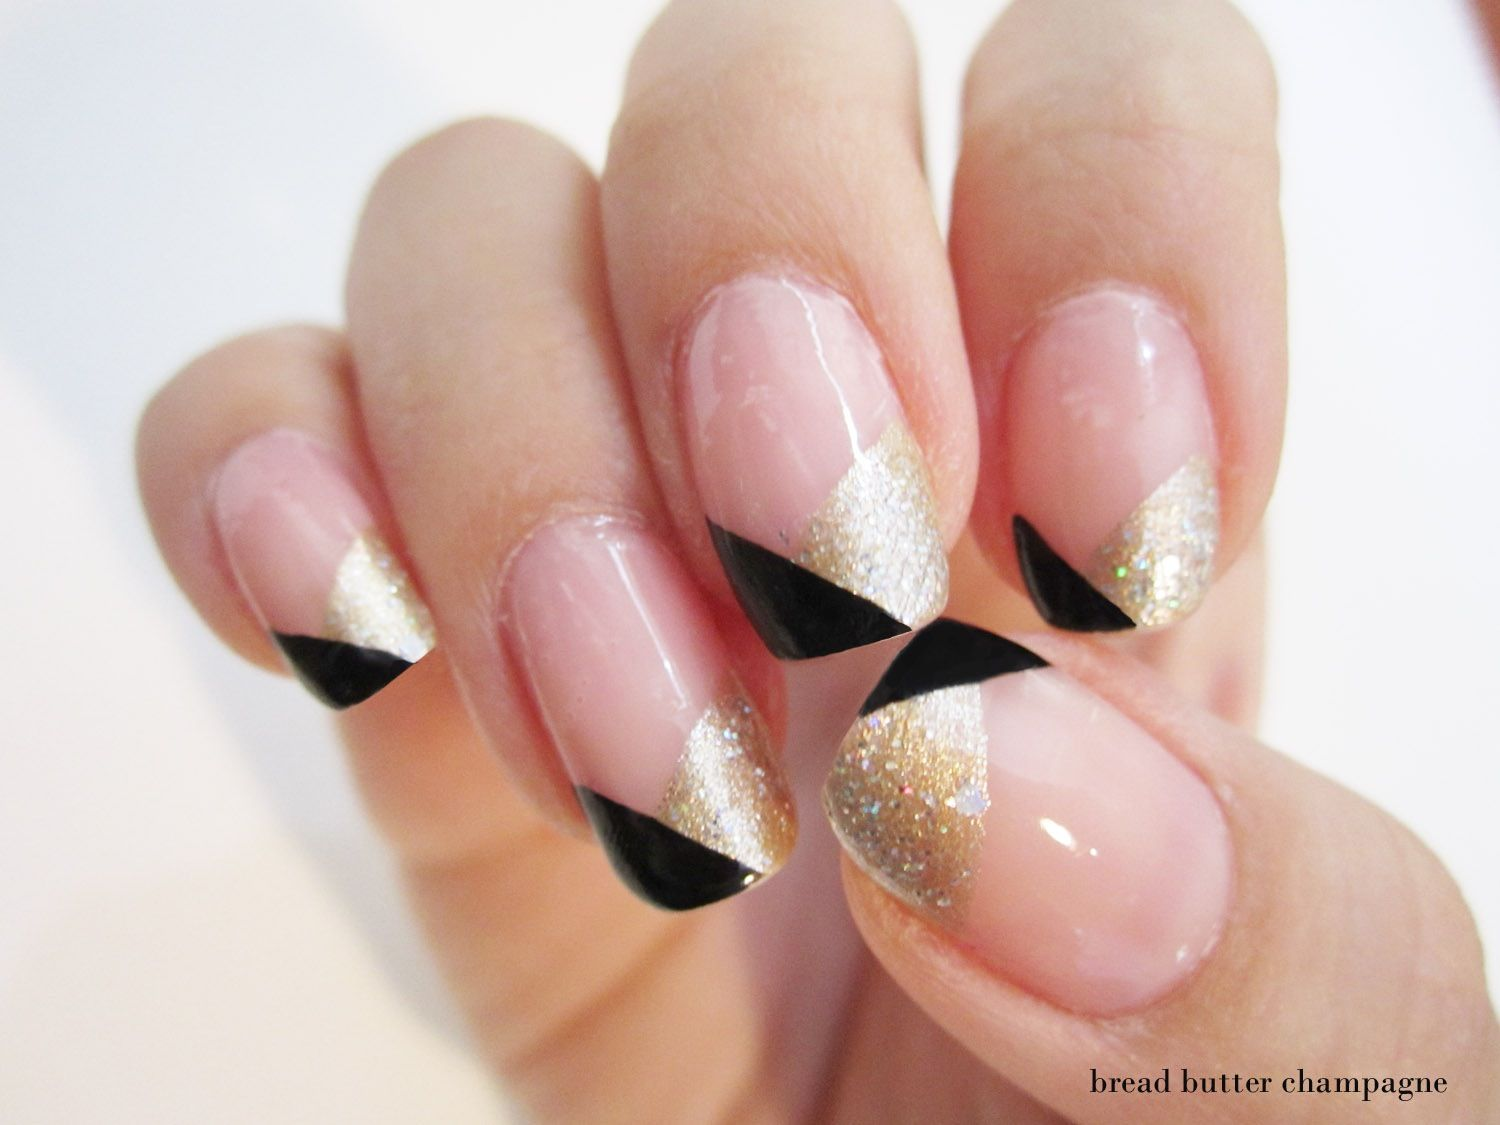 The great gatsby pink black and gold nails pinterest bread butter champagne art deco nail art the great gatsby roaring prinsesfo Choice Image